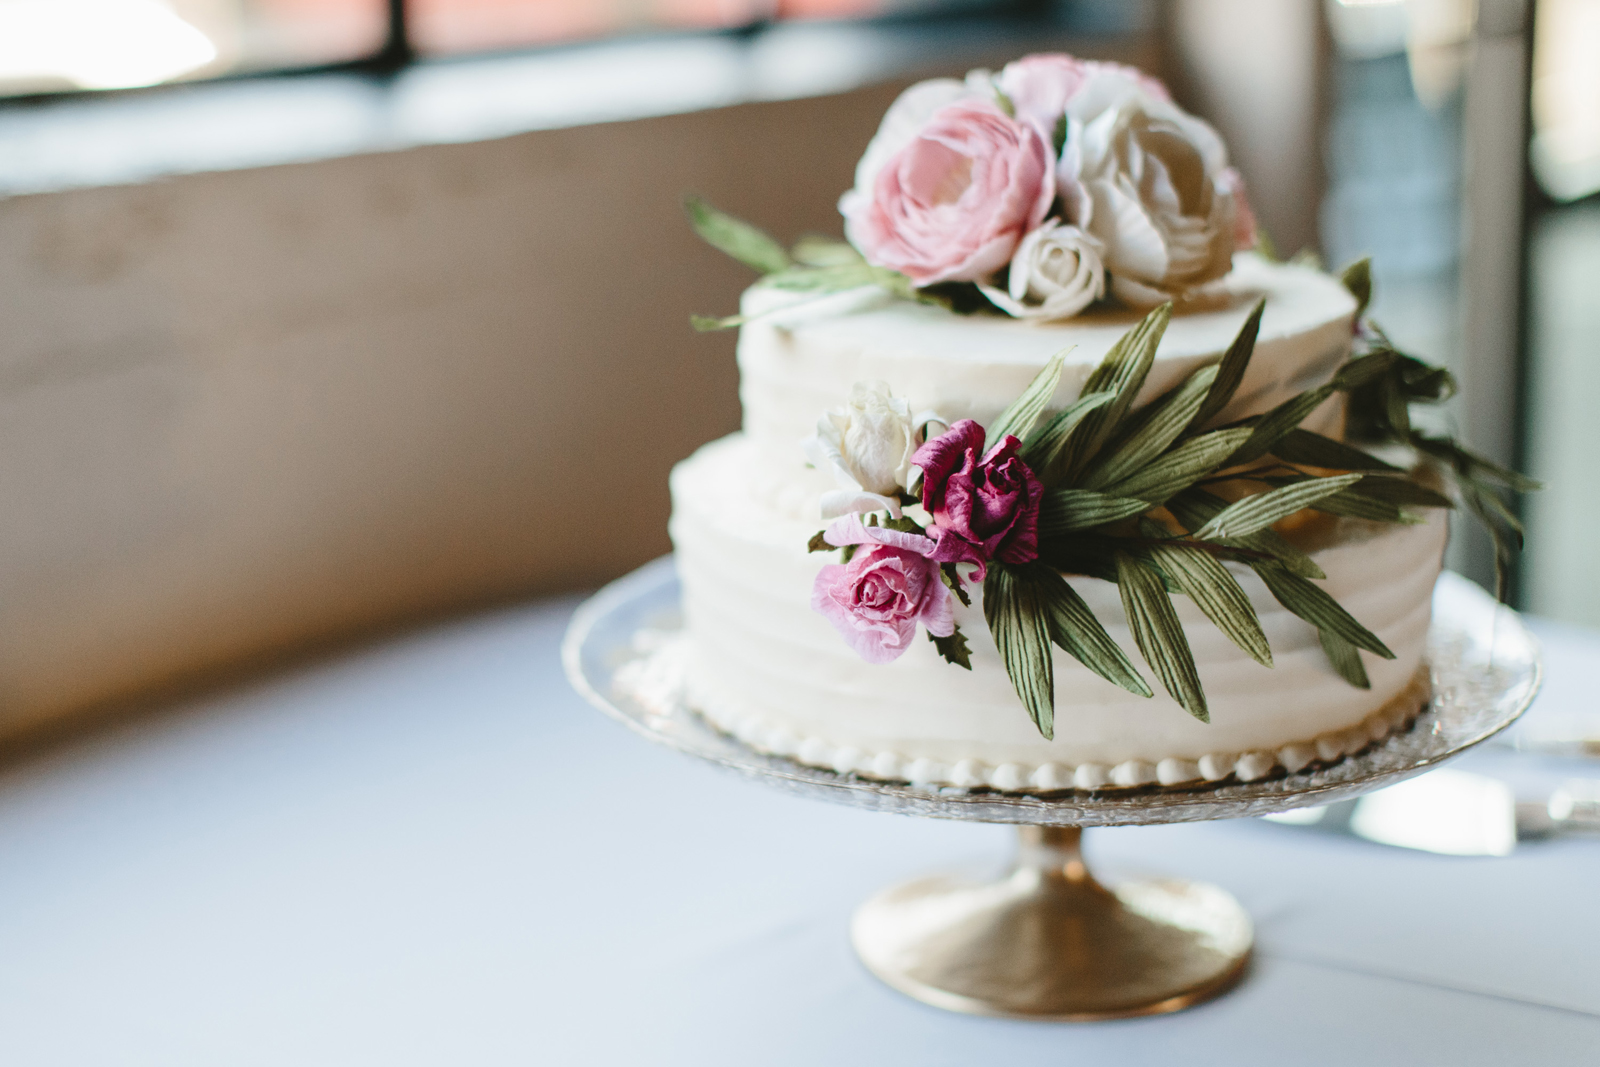 wedding cake by Kendra Hohman at Castaway Portland wedding venue